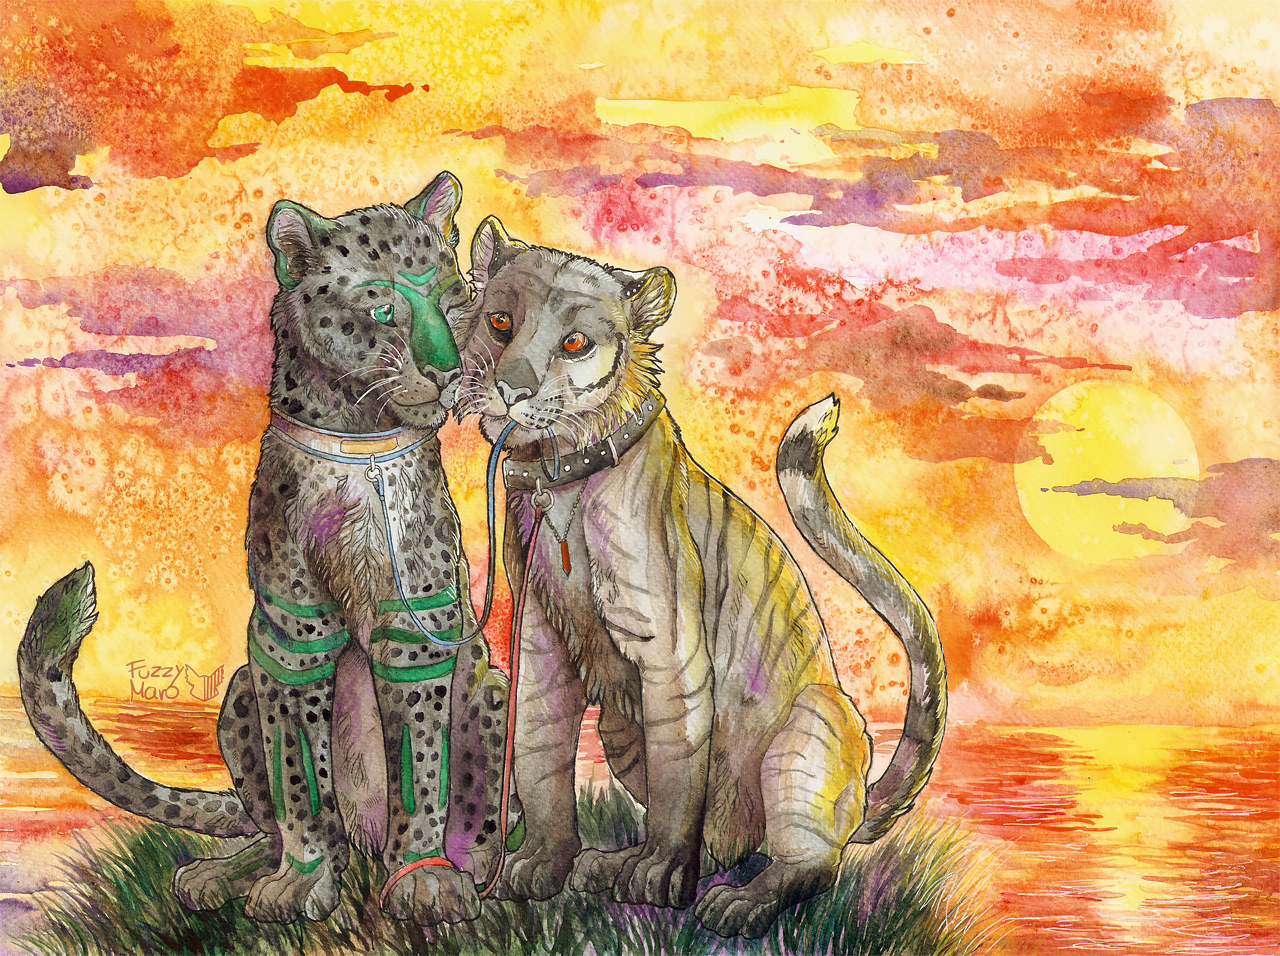 feline_couple_by_fuzzymaro-dbi4llp.png